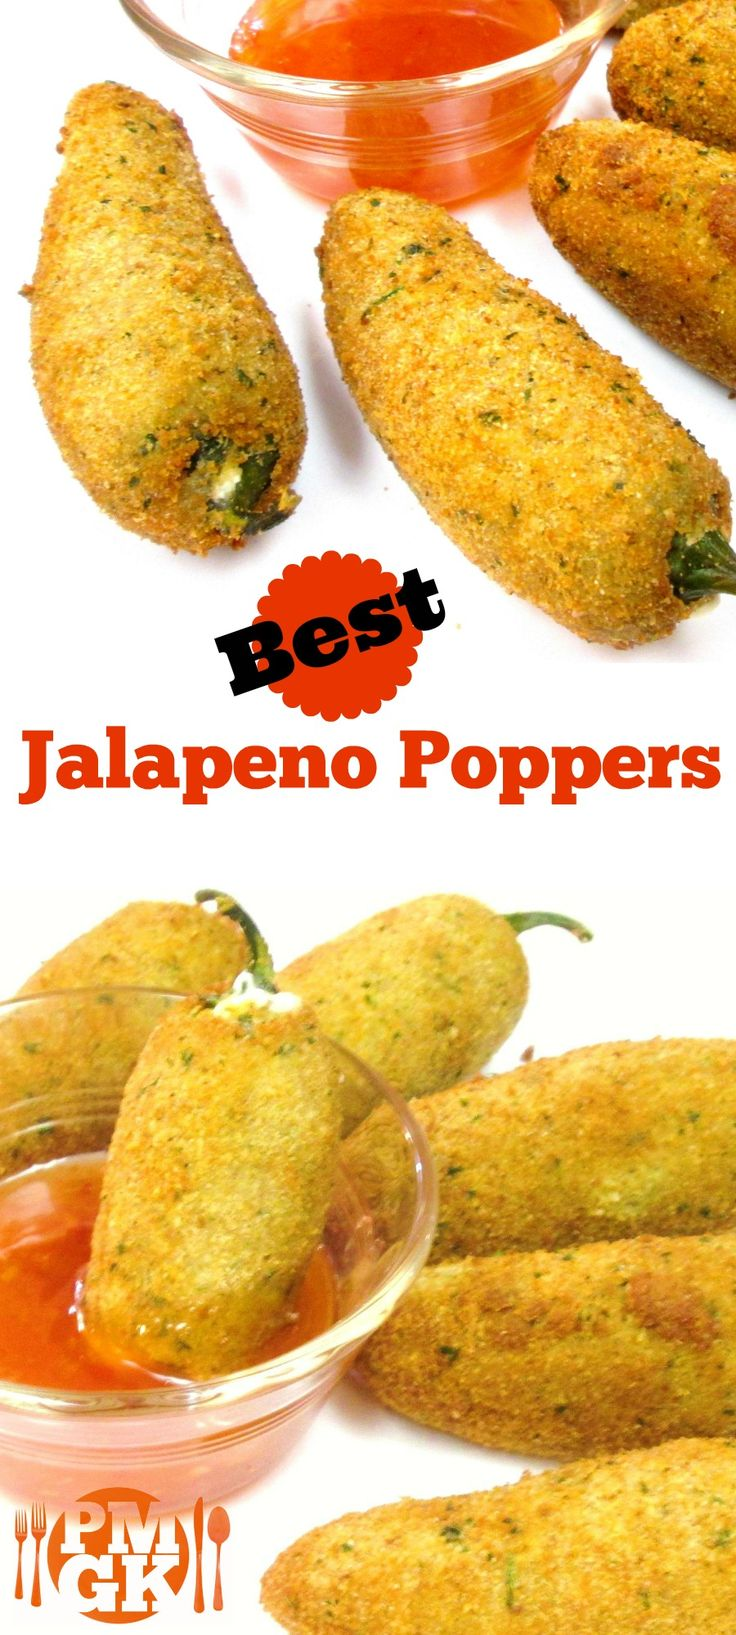 34 best pmgk latin american food recipes images on pinterest you have never seen poppers made like this before and in this video tutorial i forumfinder Gallery